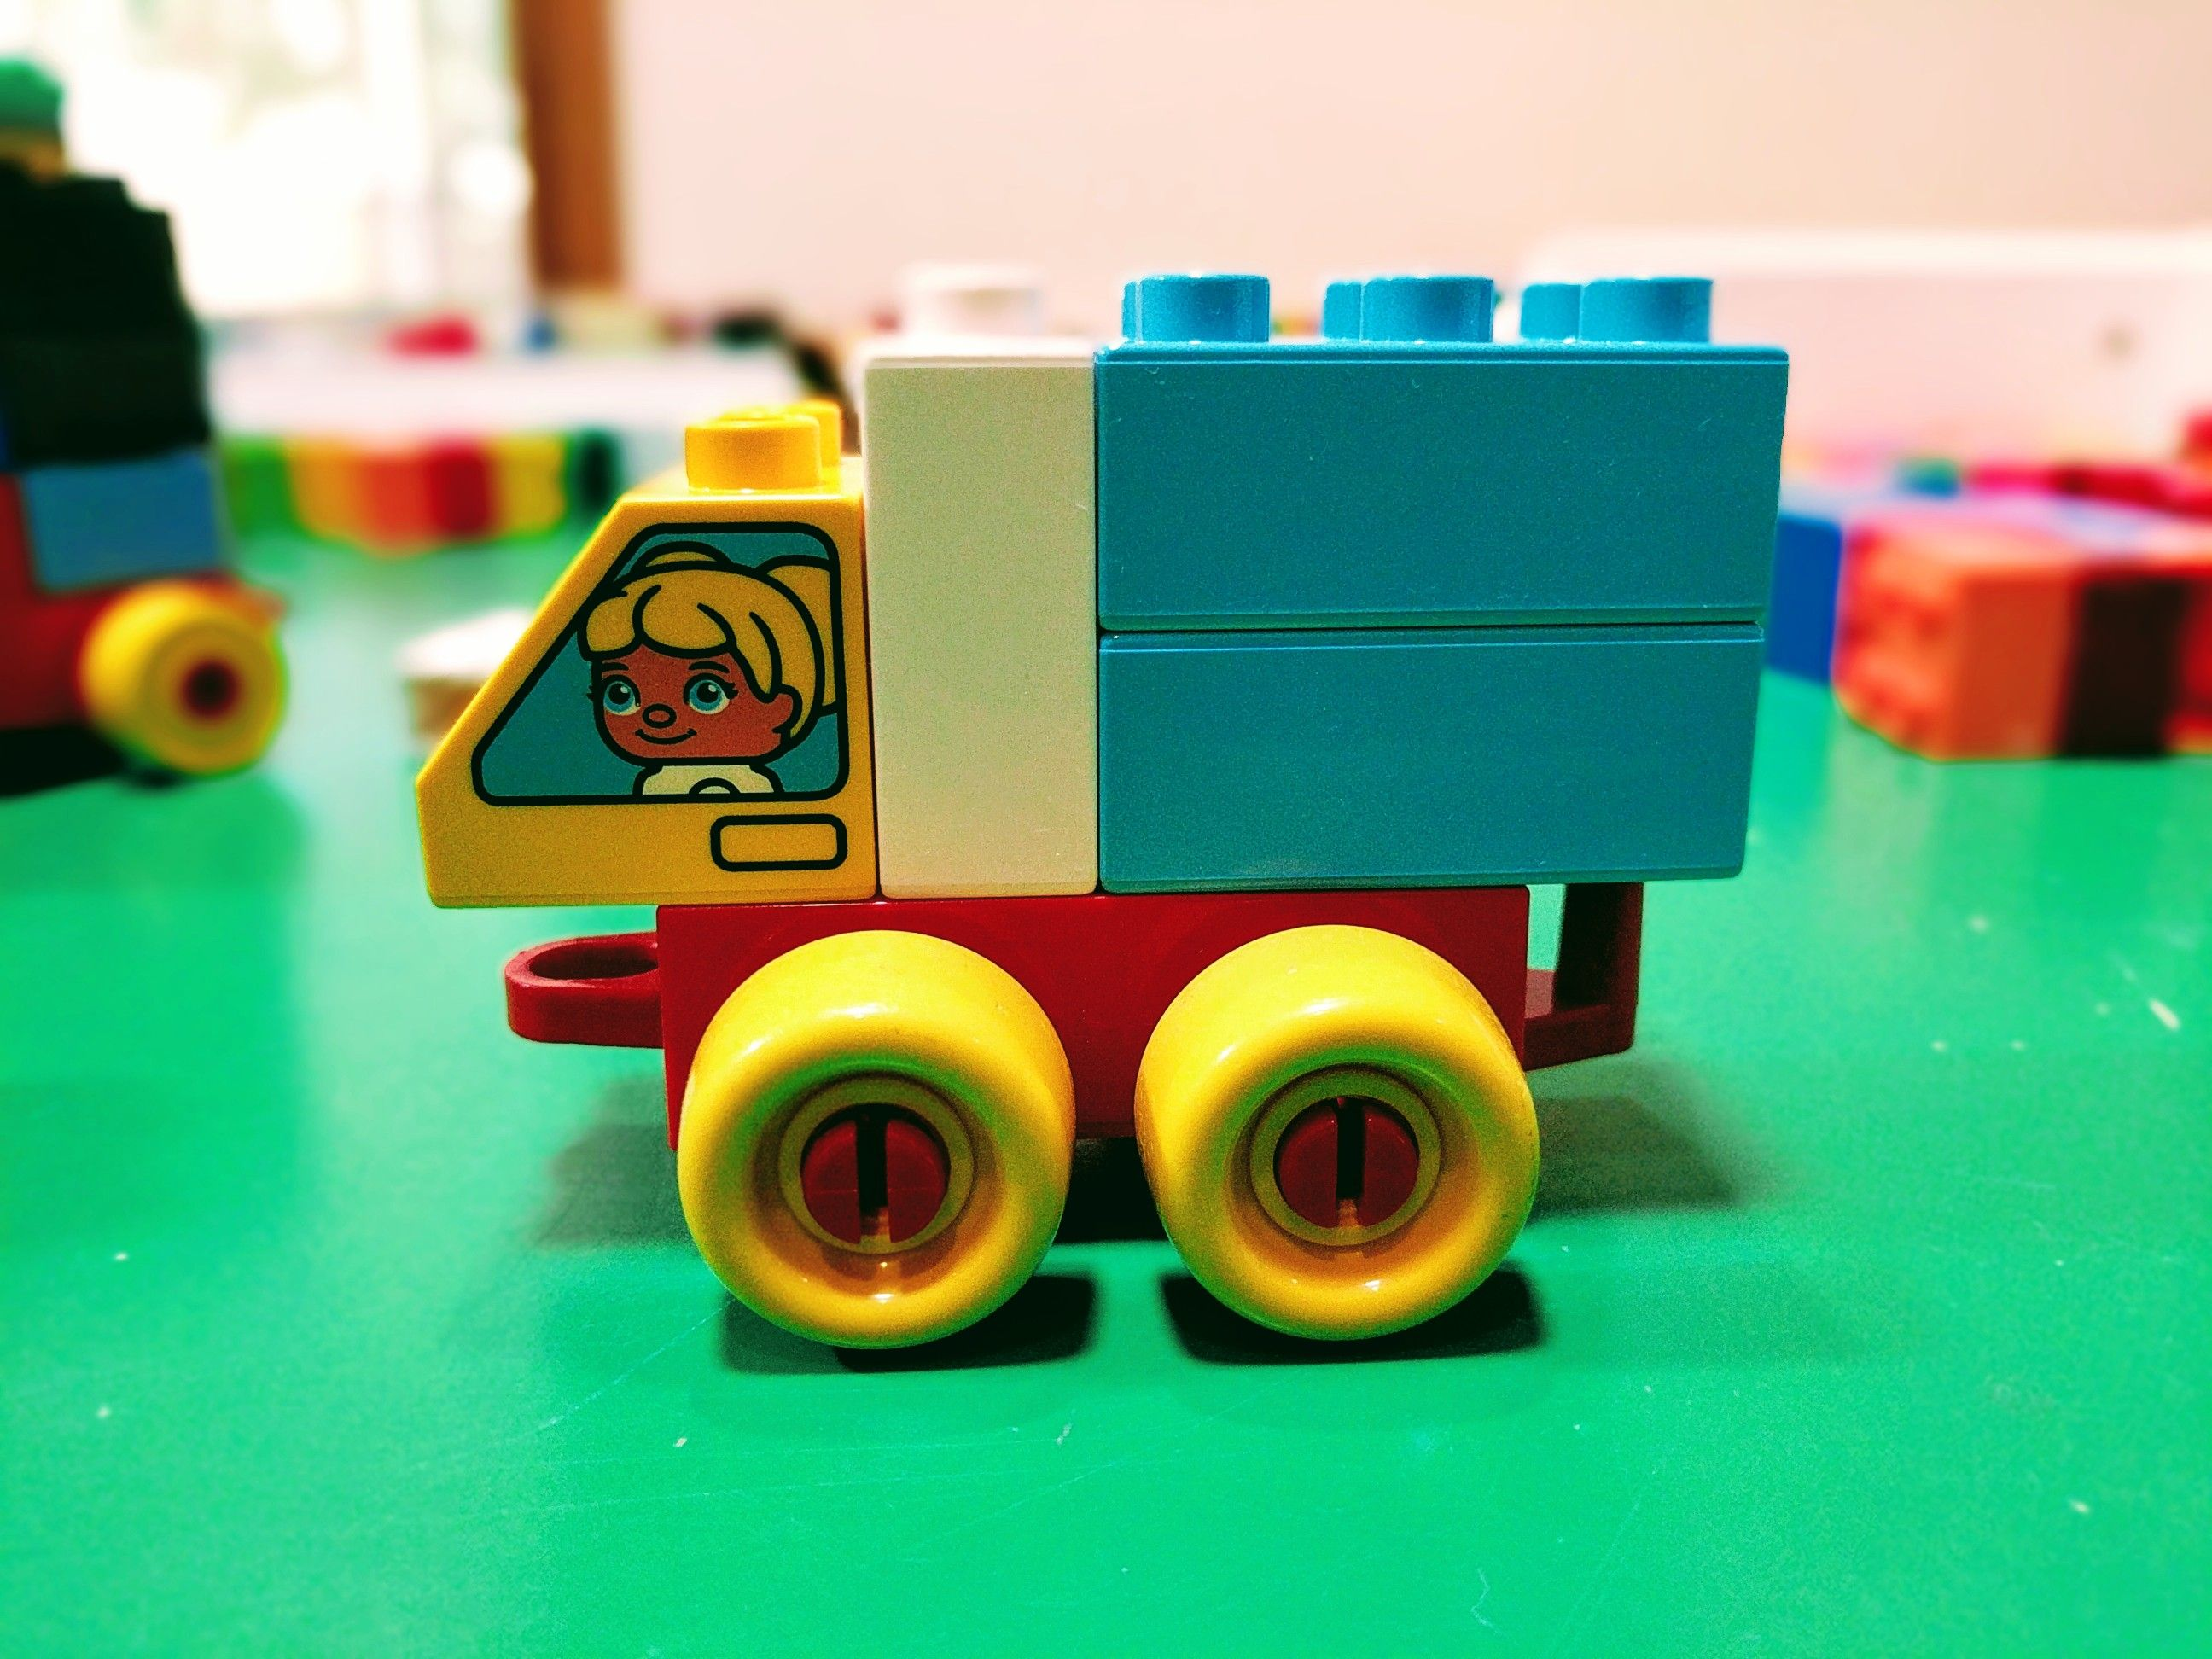 How To Build Lego Duplo Cars Instructions Samples Lego Duplo